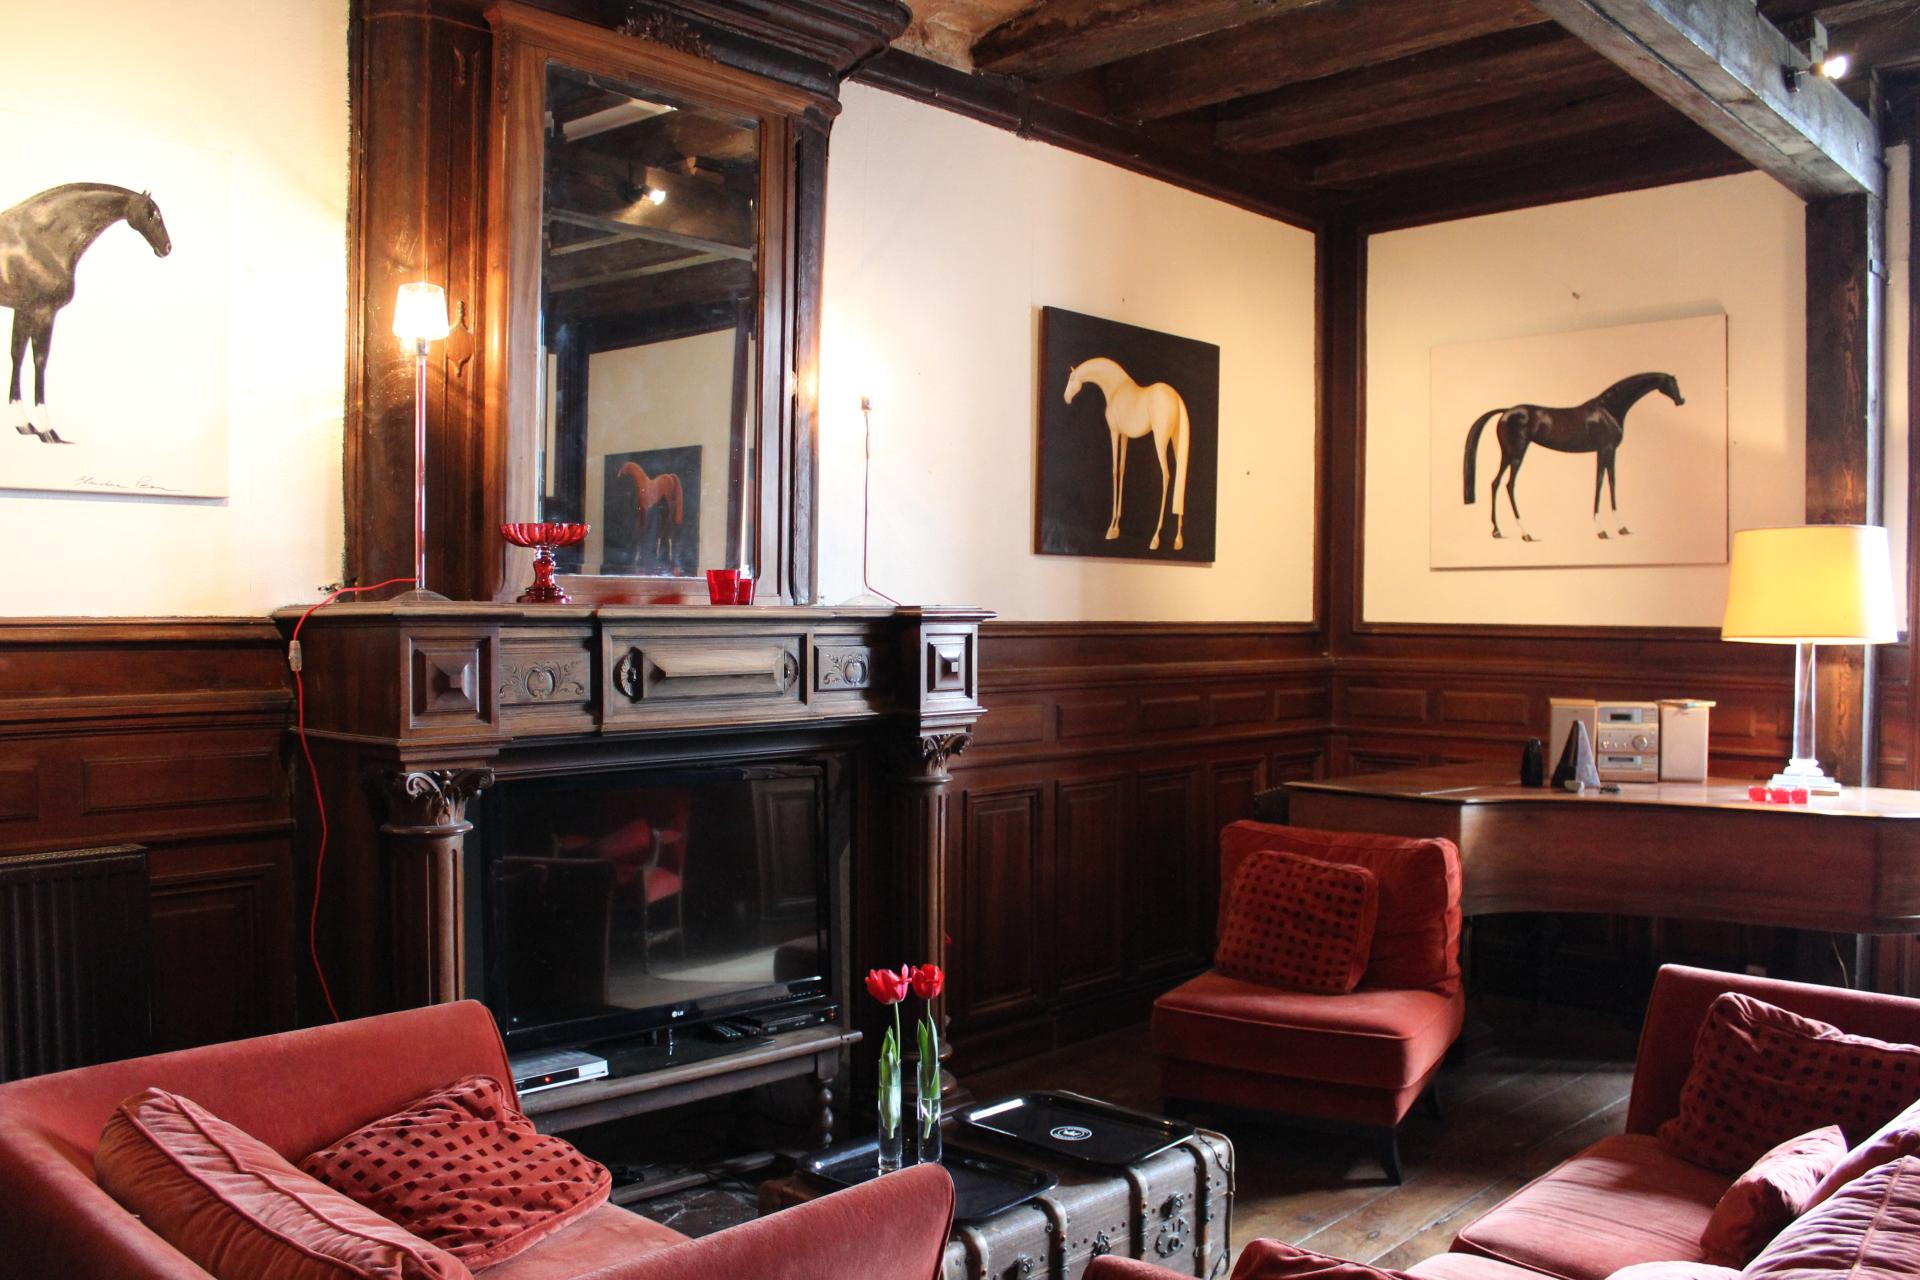 Lounge with Fireplace, Chateau de Sers, Angouleme, Vendee Charente.